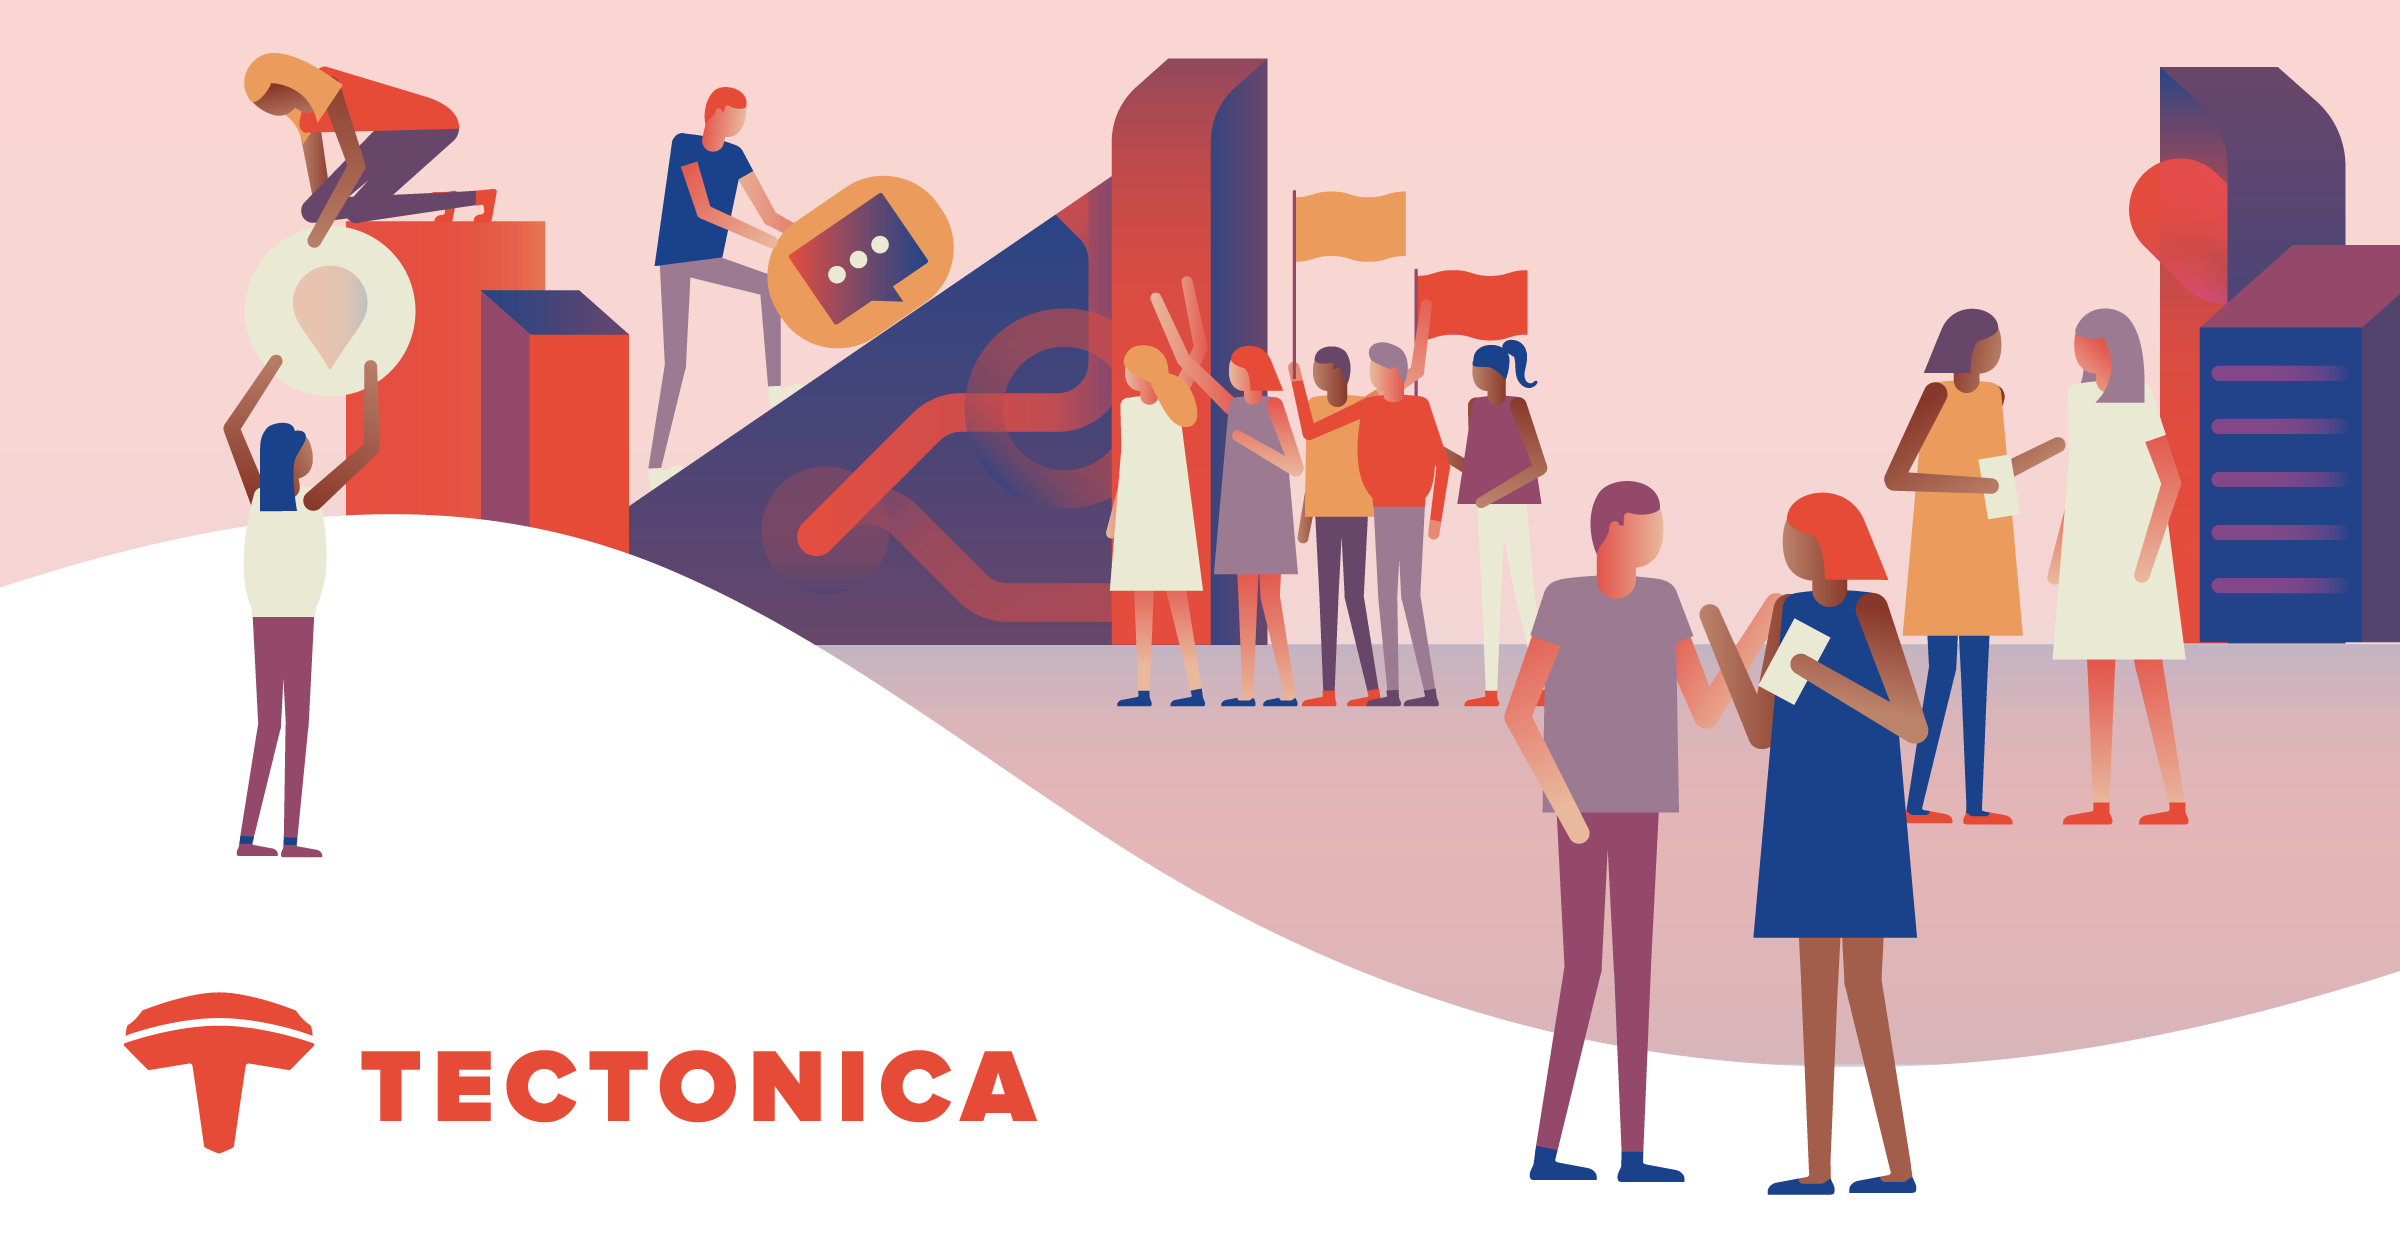 Tectonica: Digital Organizing to Impact Change